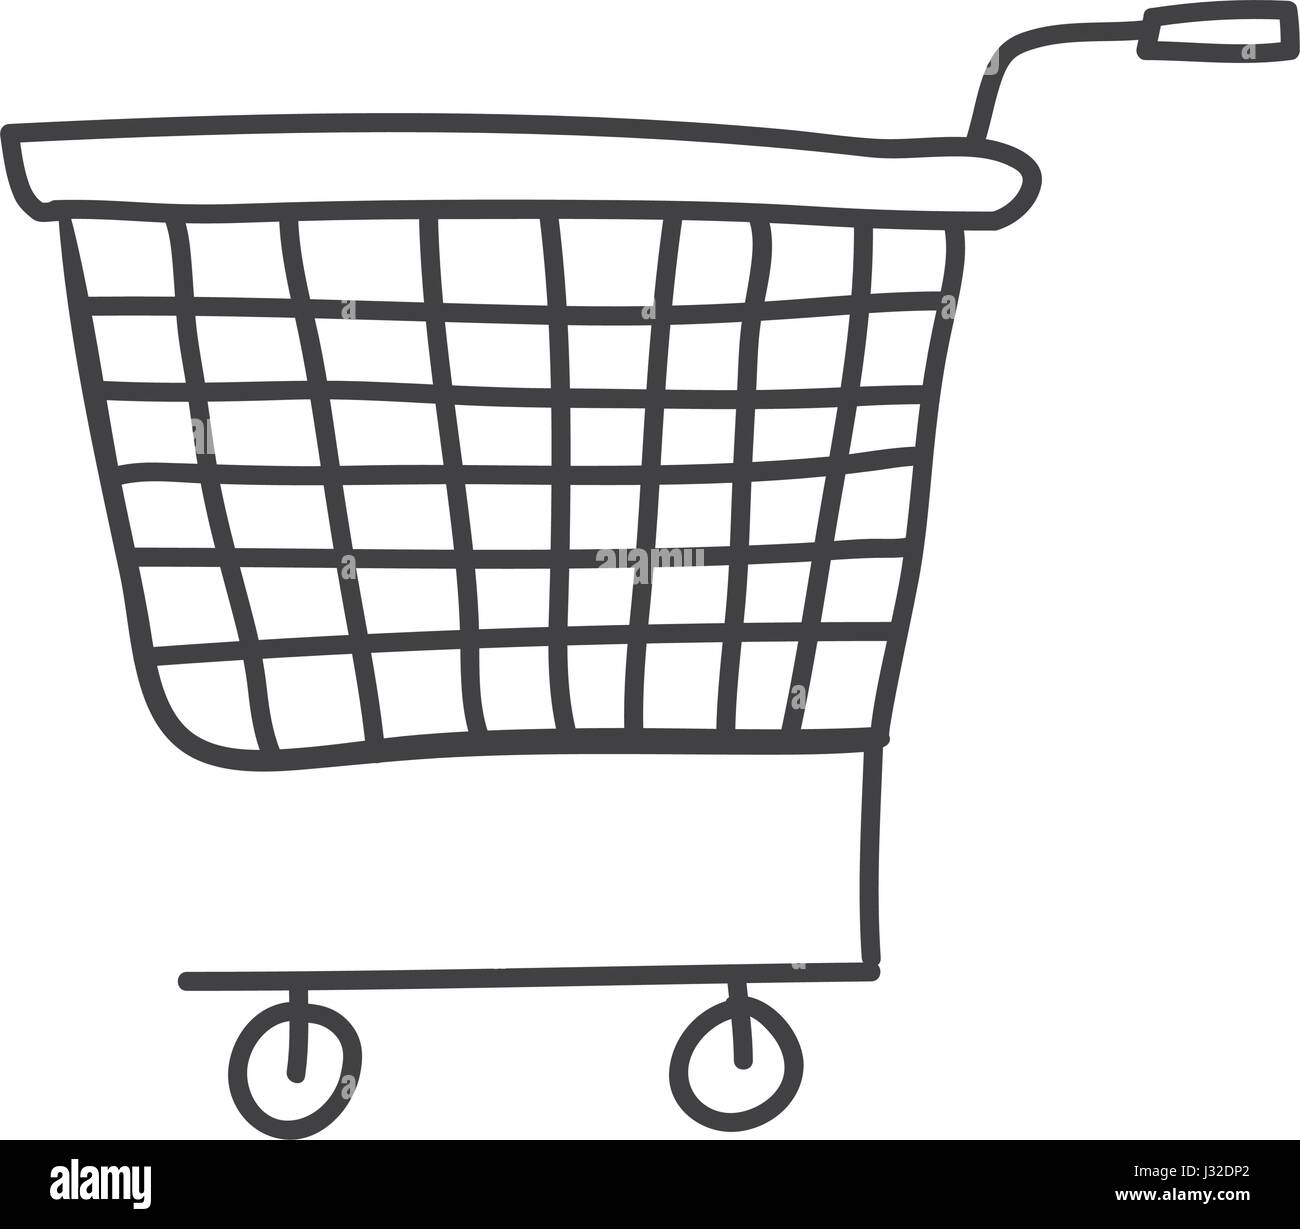 monochrome contour of supermarket shopping cart - Stock Vector